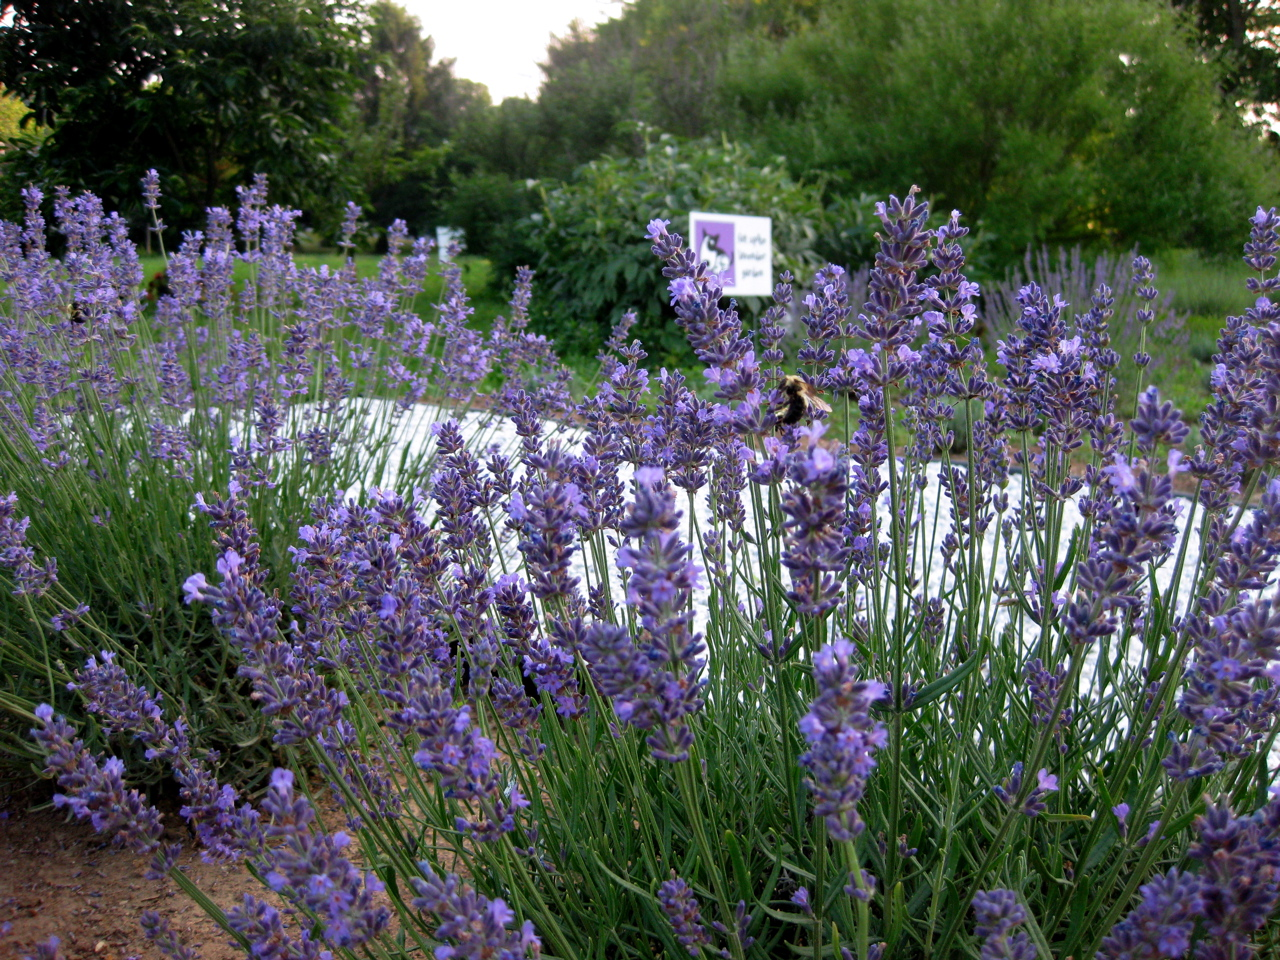 Lavender in bloom at Stargazers Vineyard and Winery